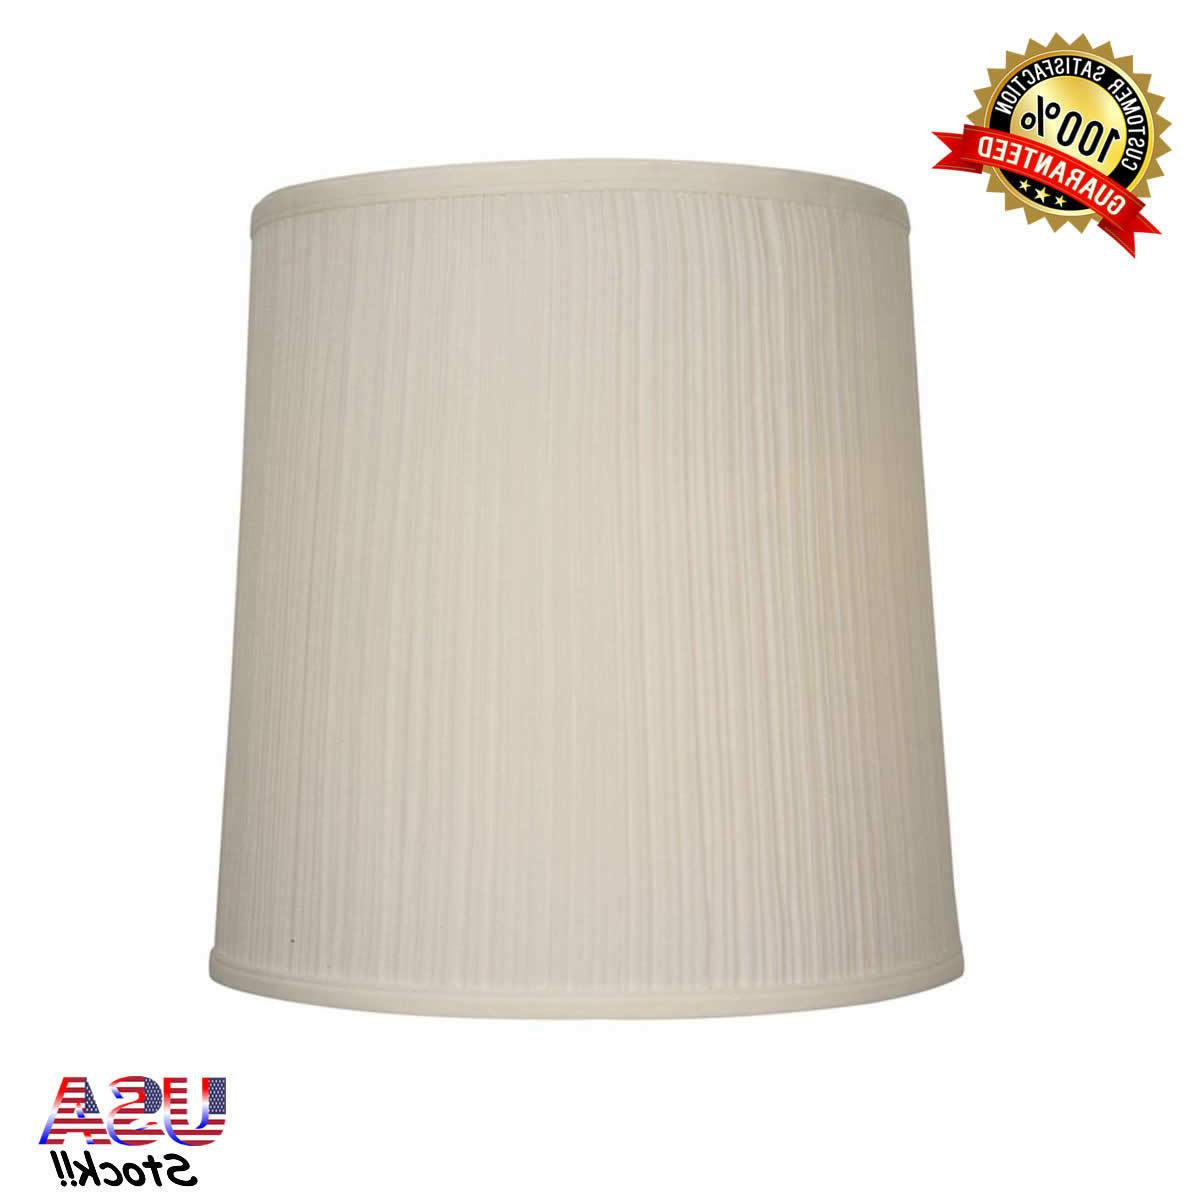 14-in x 14-in Beige Fabric Drum Lamp Shade Fitter Type Spide